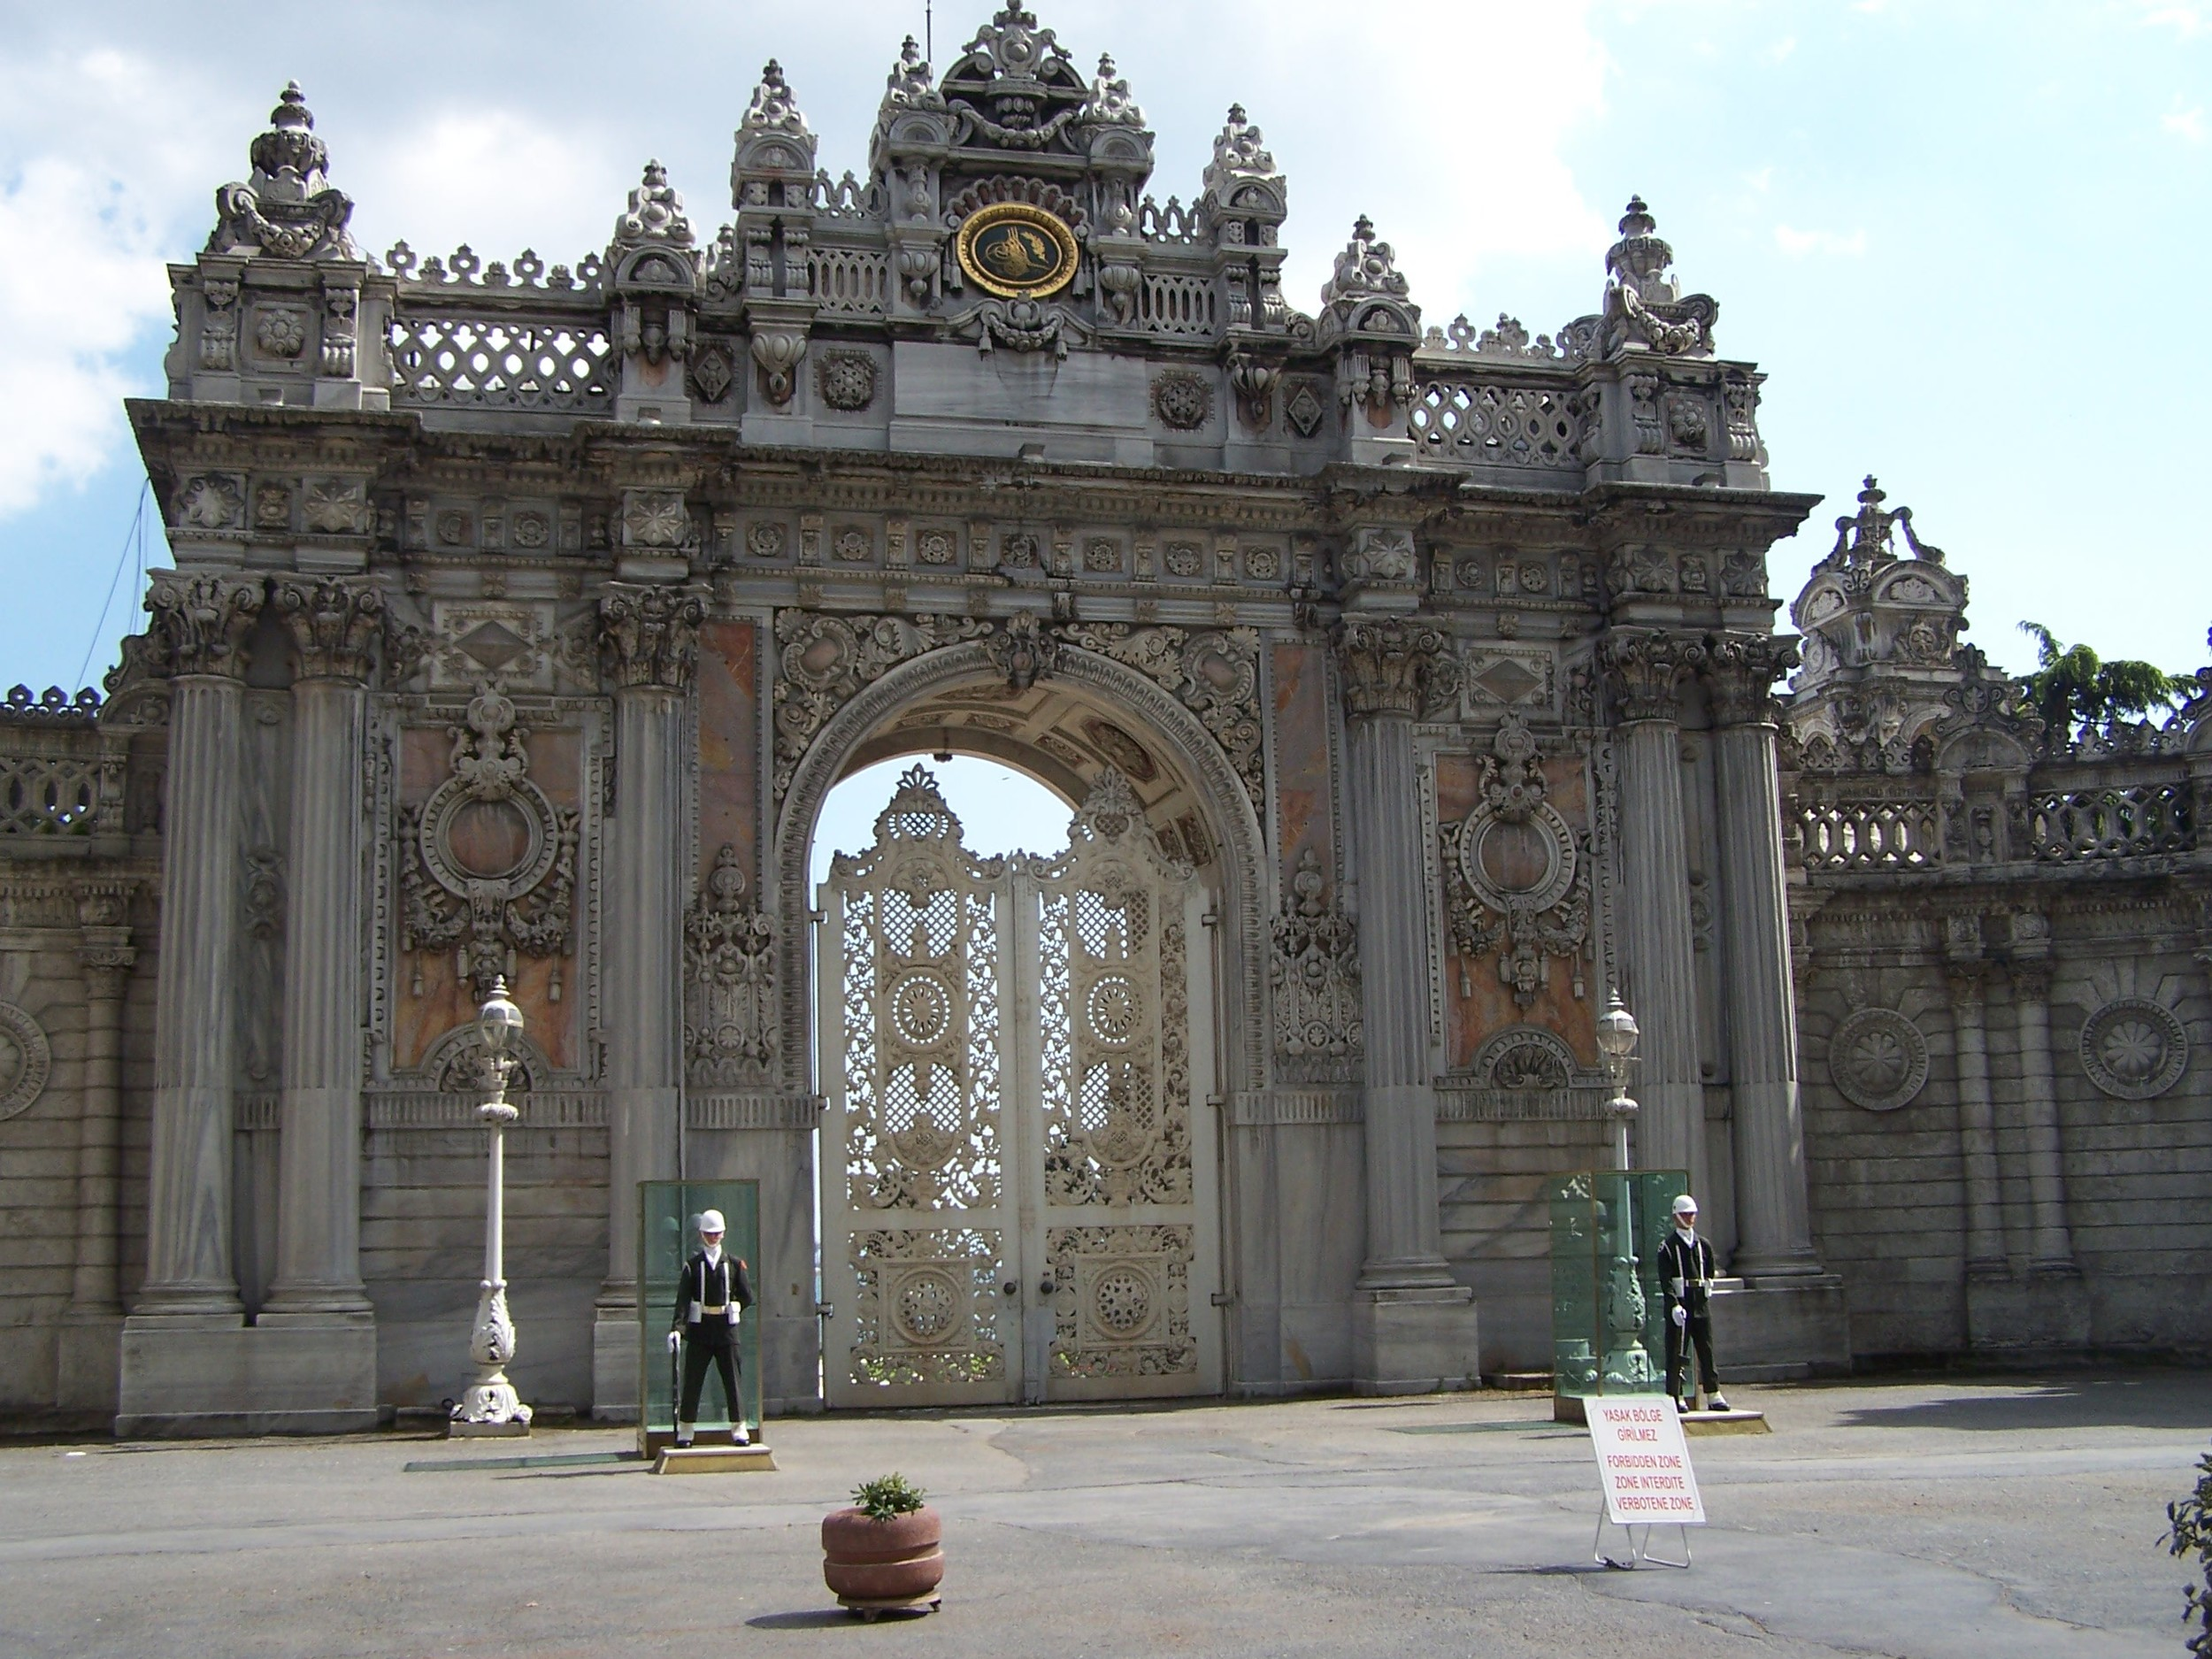 the gates of theDolmabahçe Palace